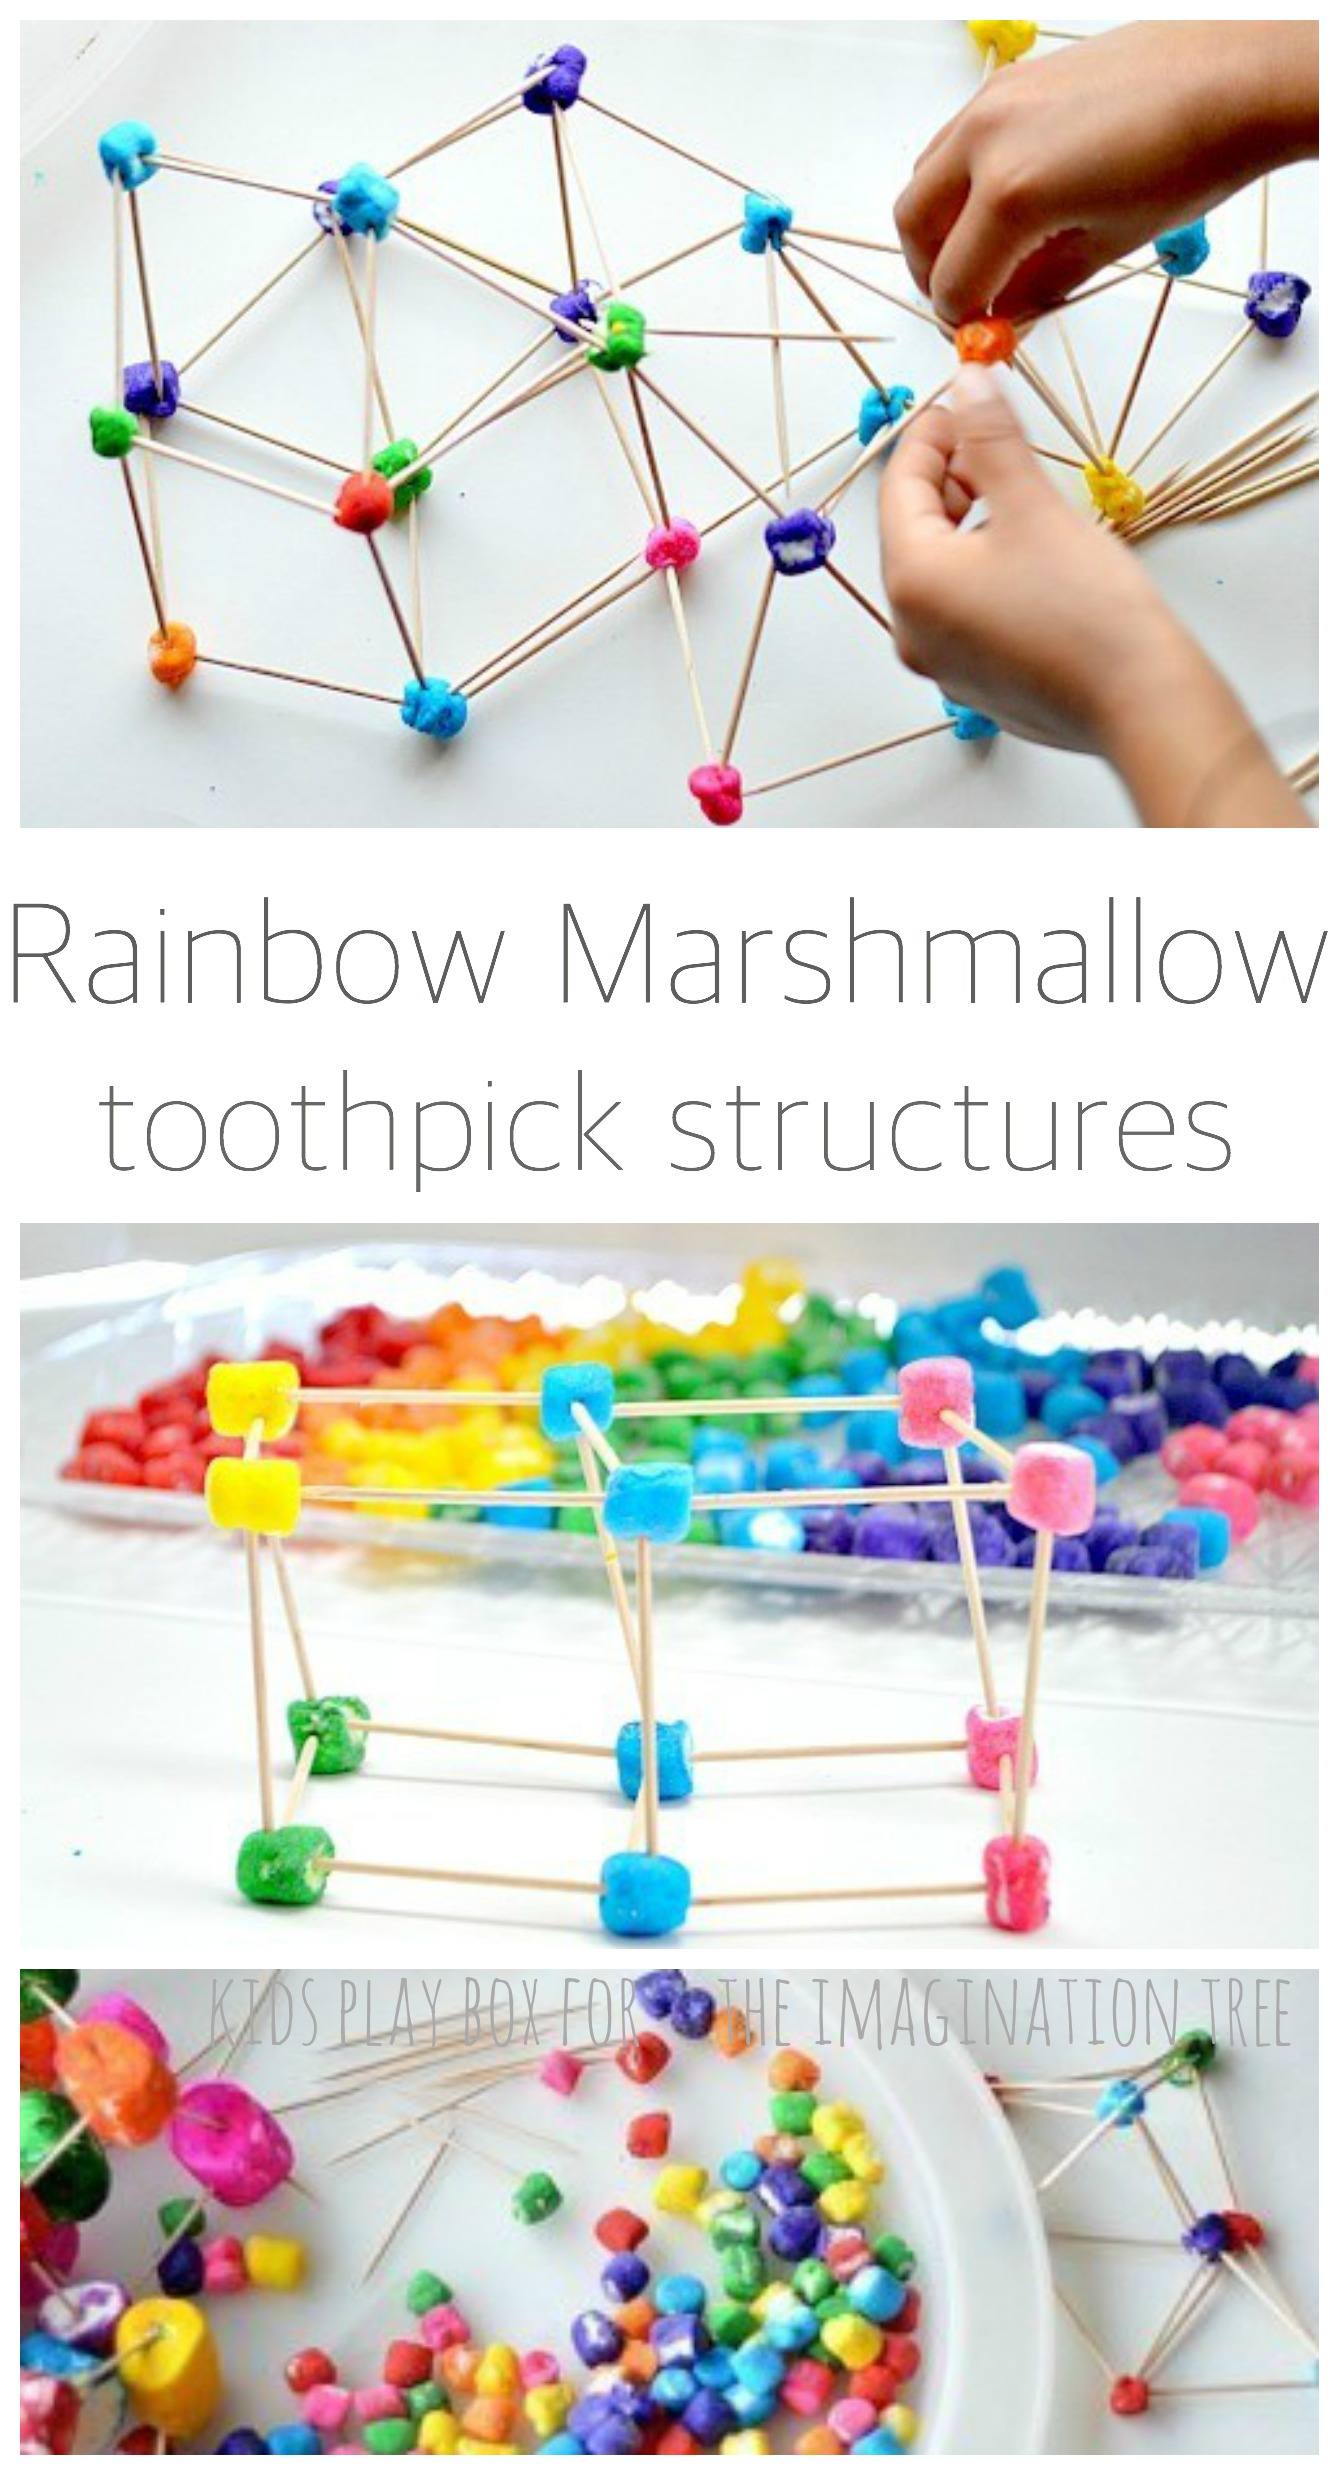 photo regarding Building With Toothpicks and Marshmallows Printable known as Rainbow Marshmallow and Toothpick Constructions - The